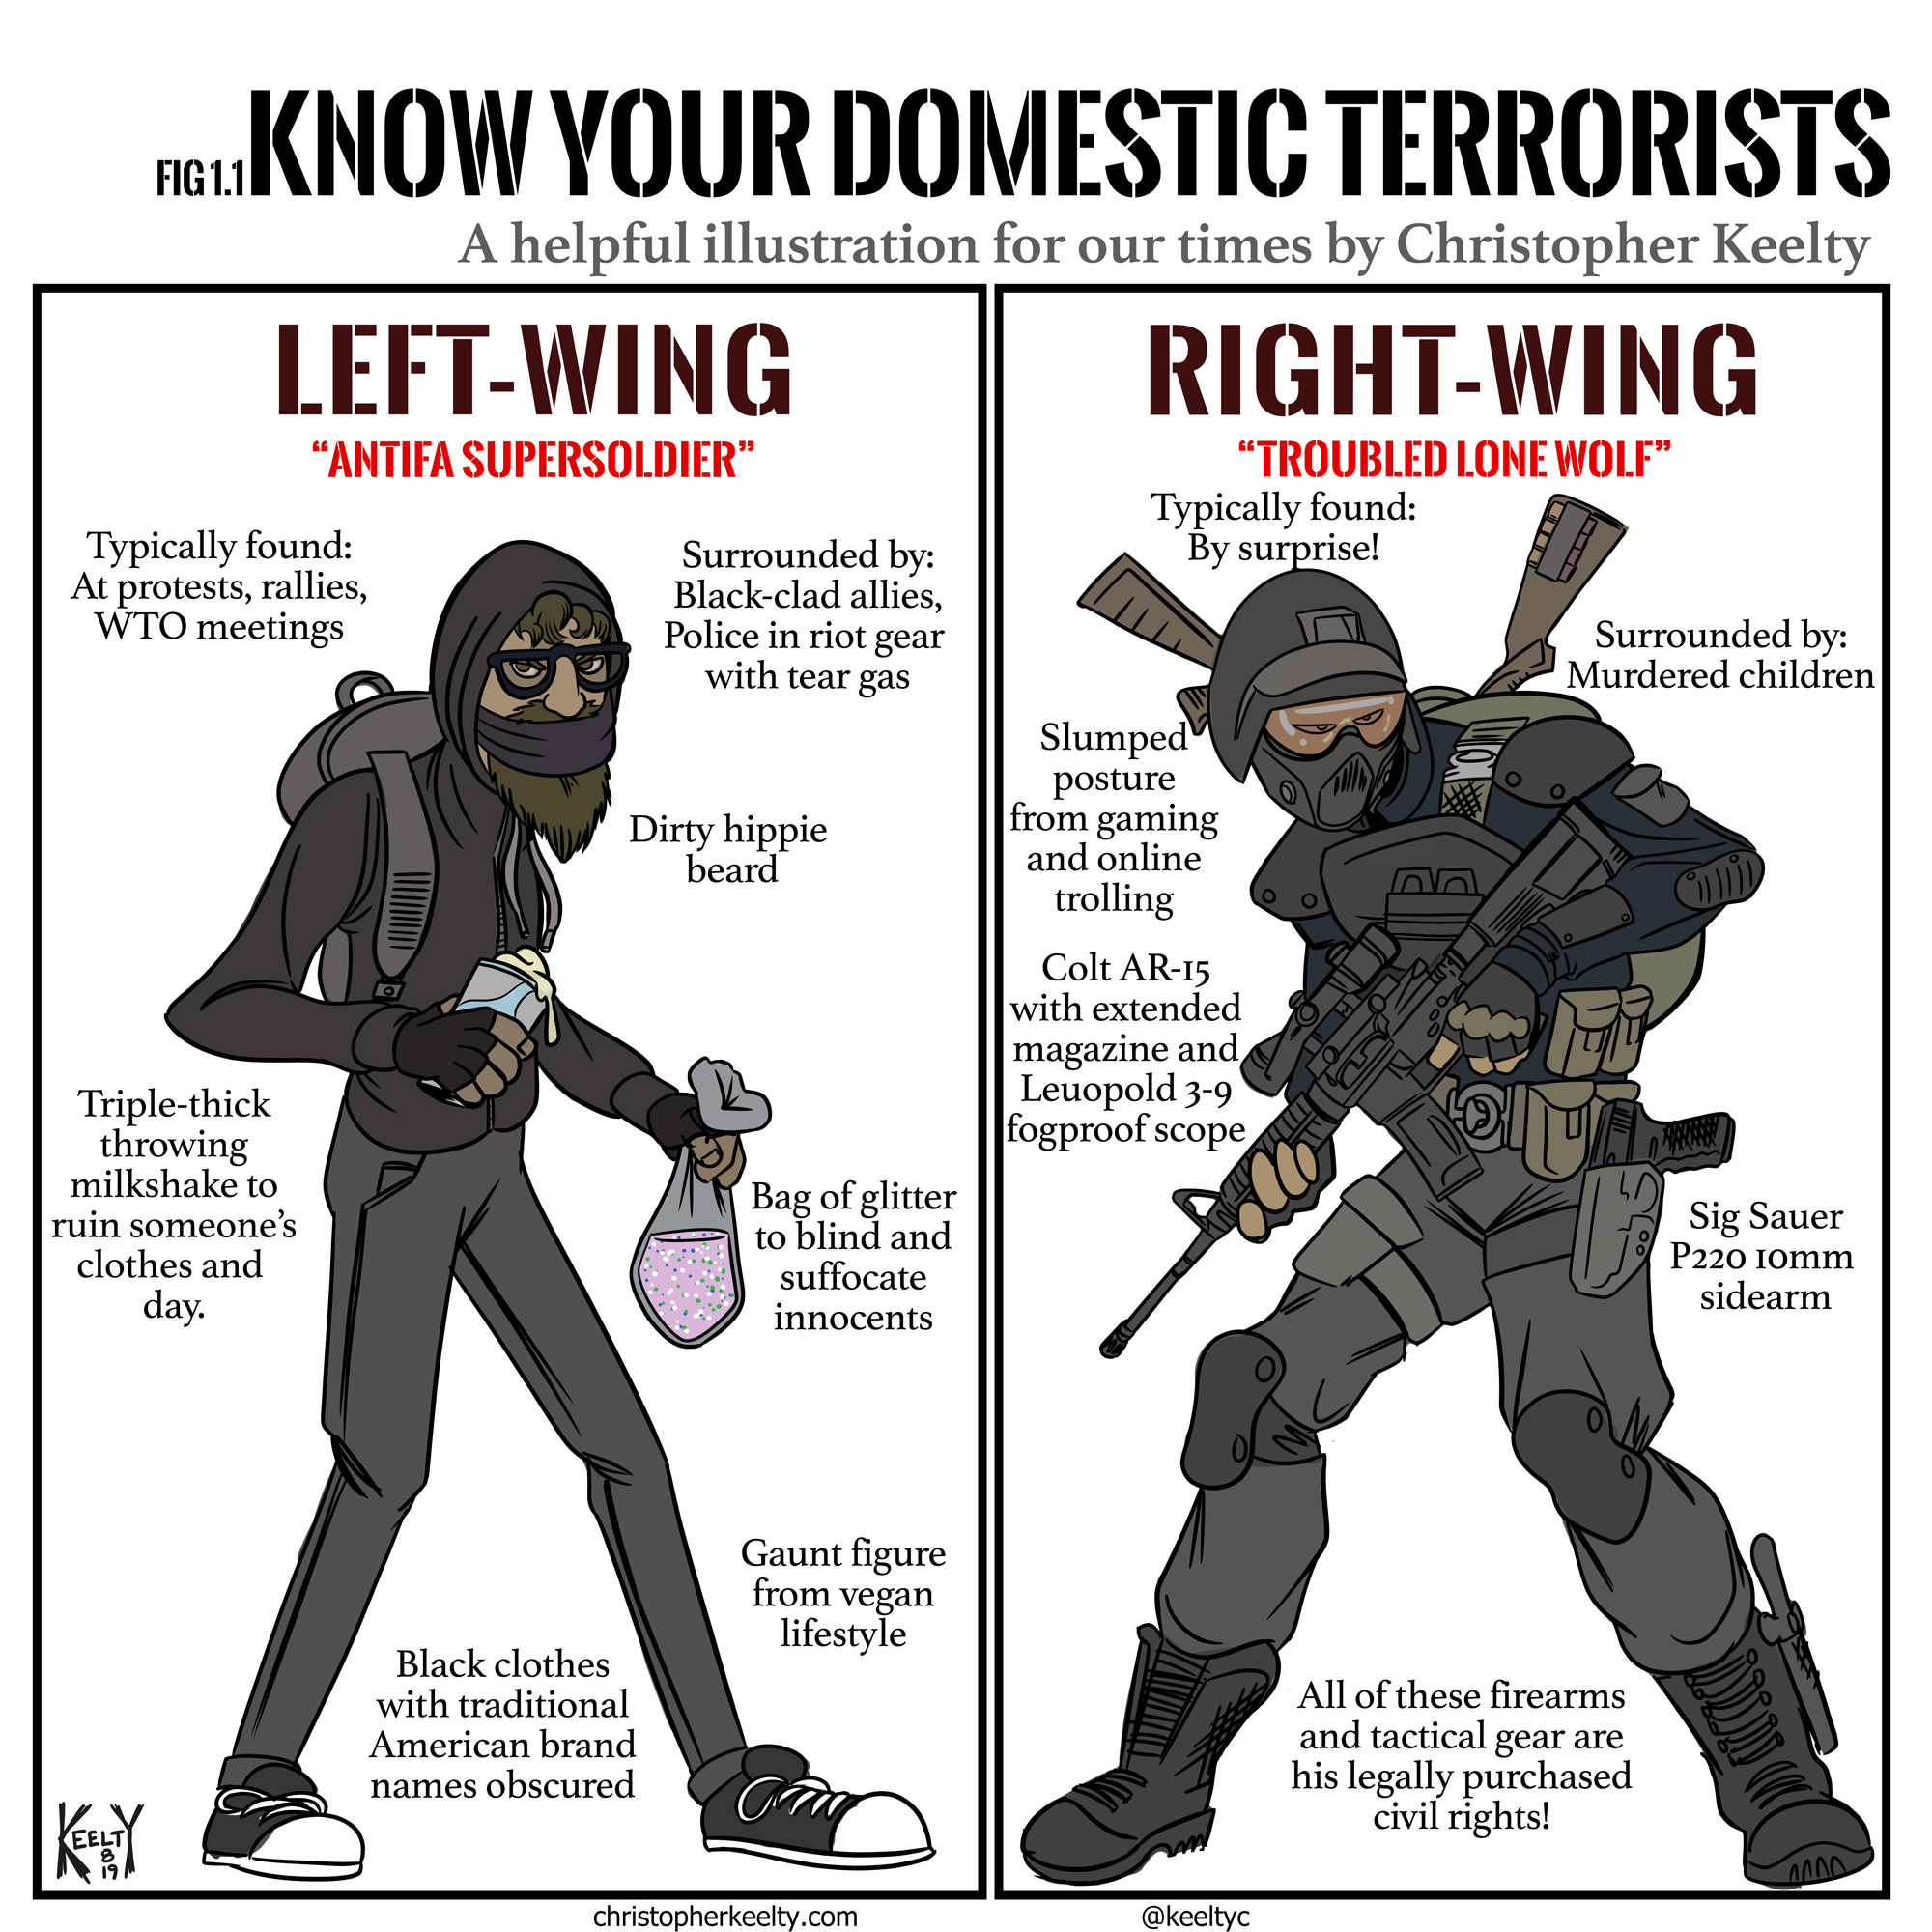 Remember, according to the federal government and US media, Antifa milkshake hurlers are just as dangerous as right-wing mass shooters!